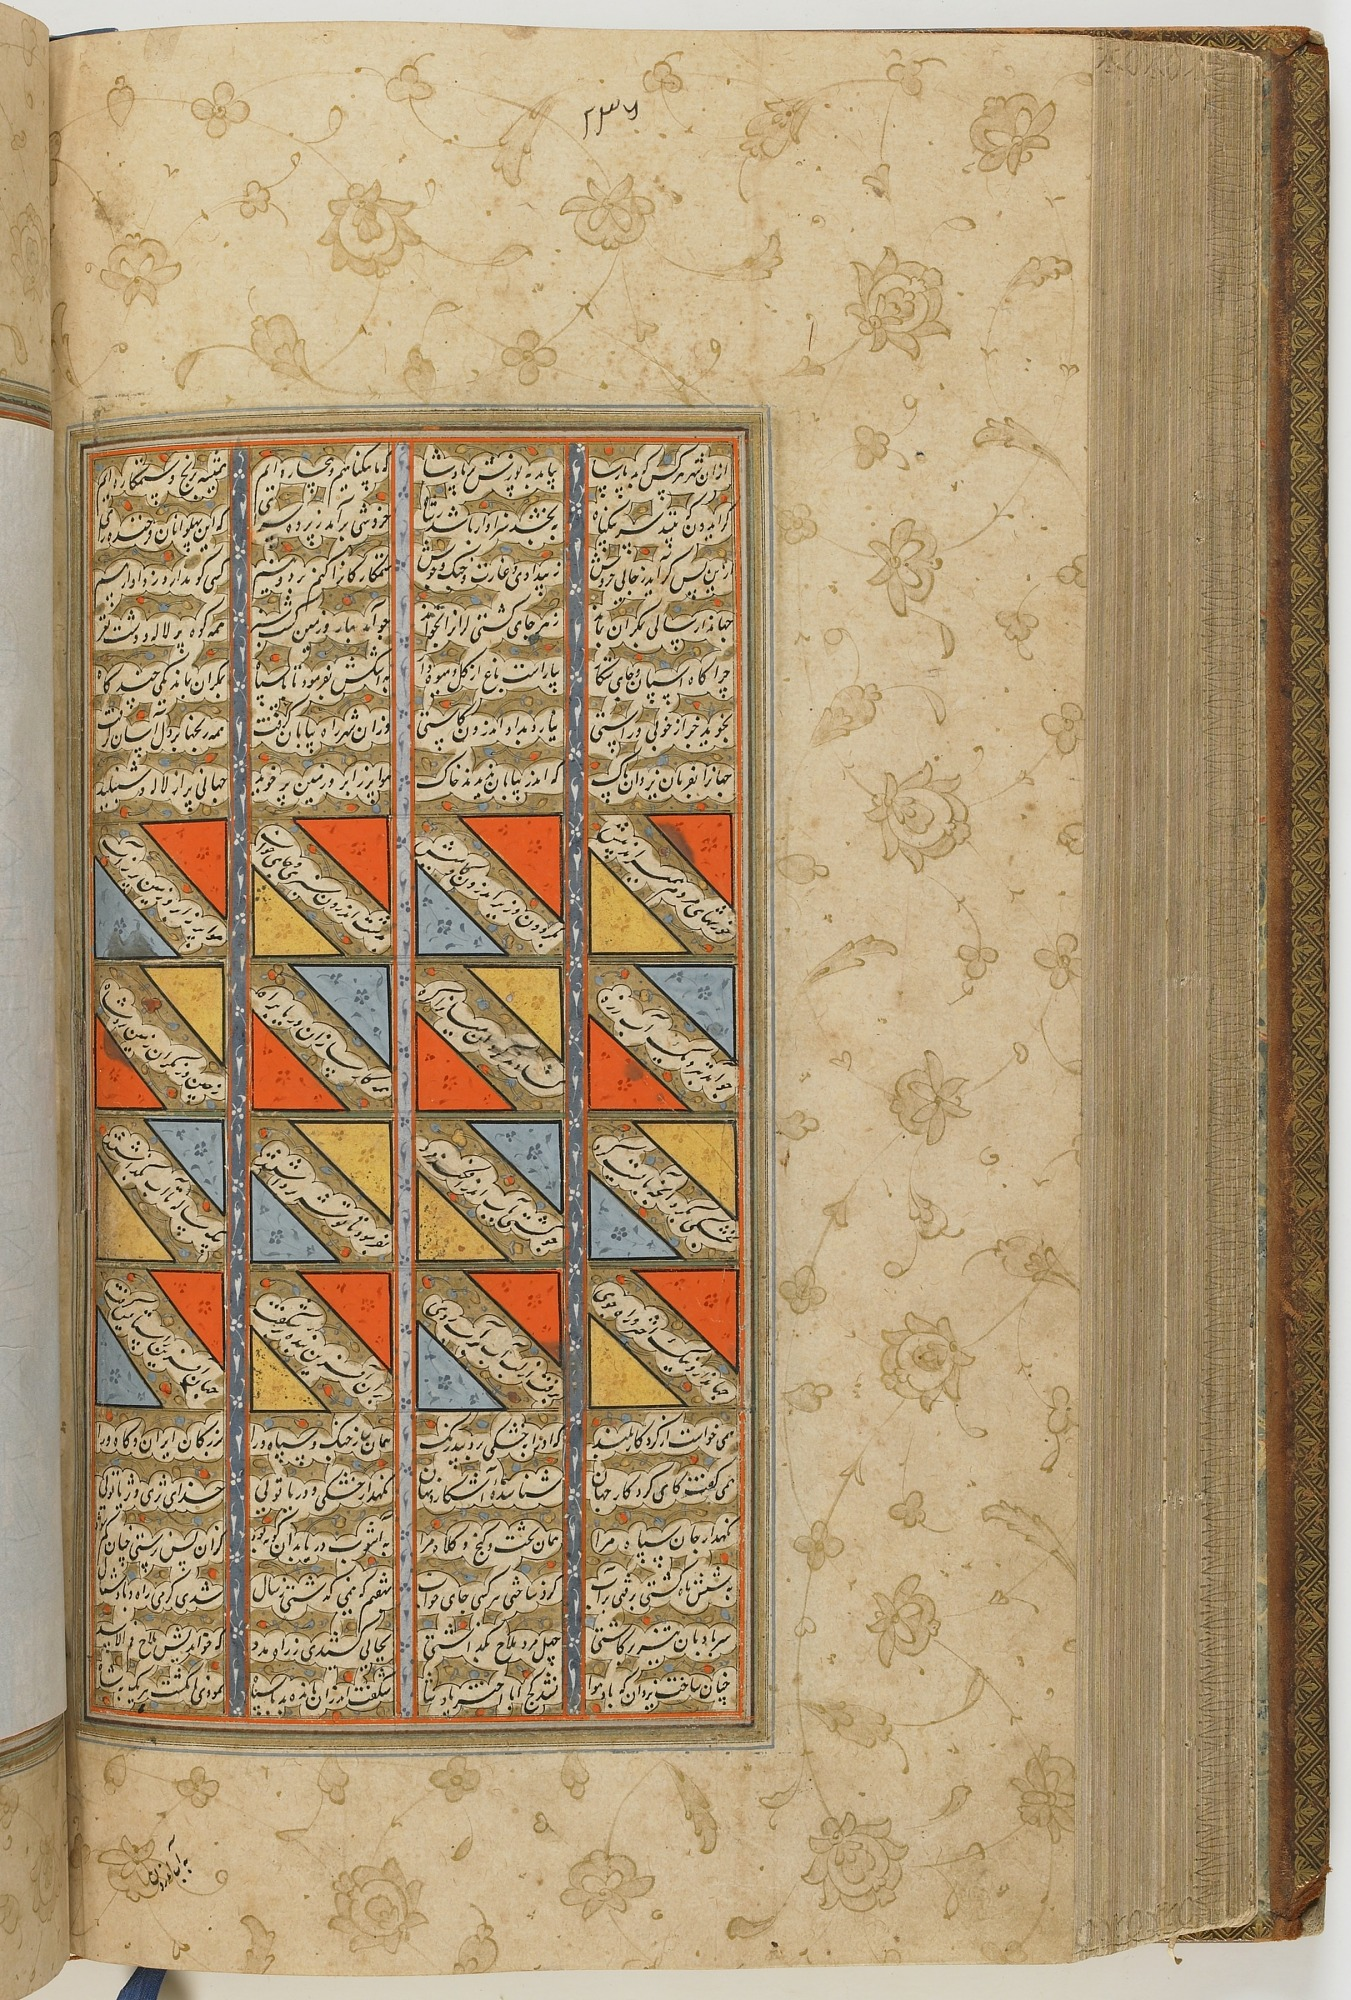 folio 237 verso: The Shahnama (Book of kings) by Firdausi (d. 1020)